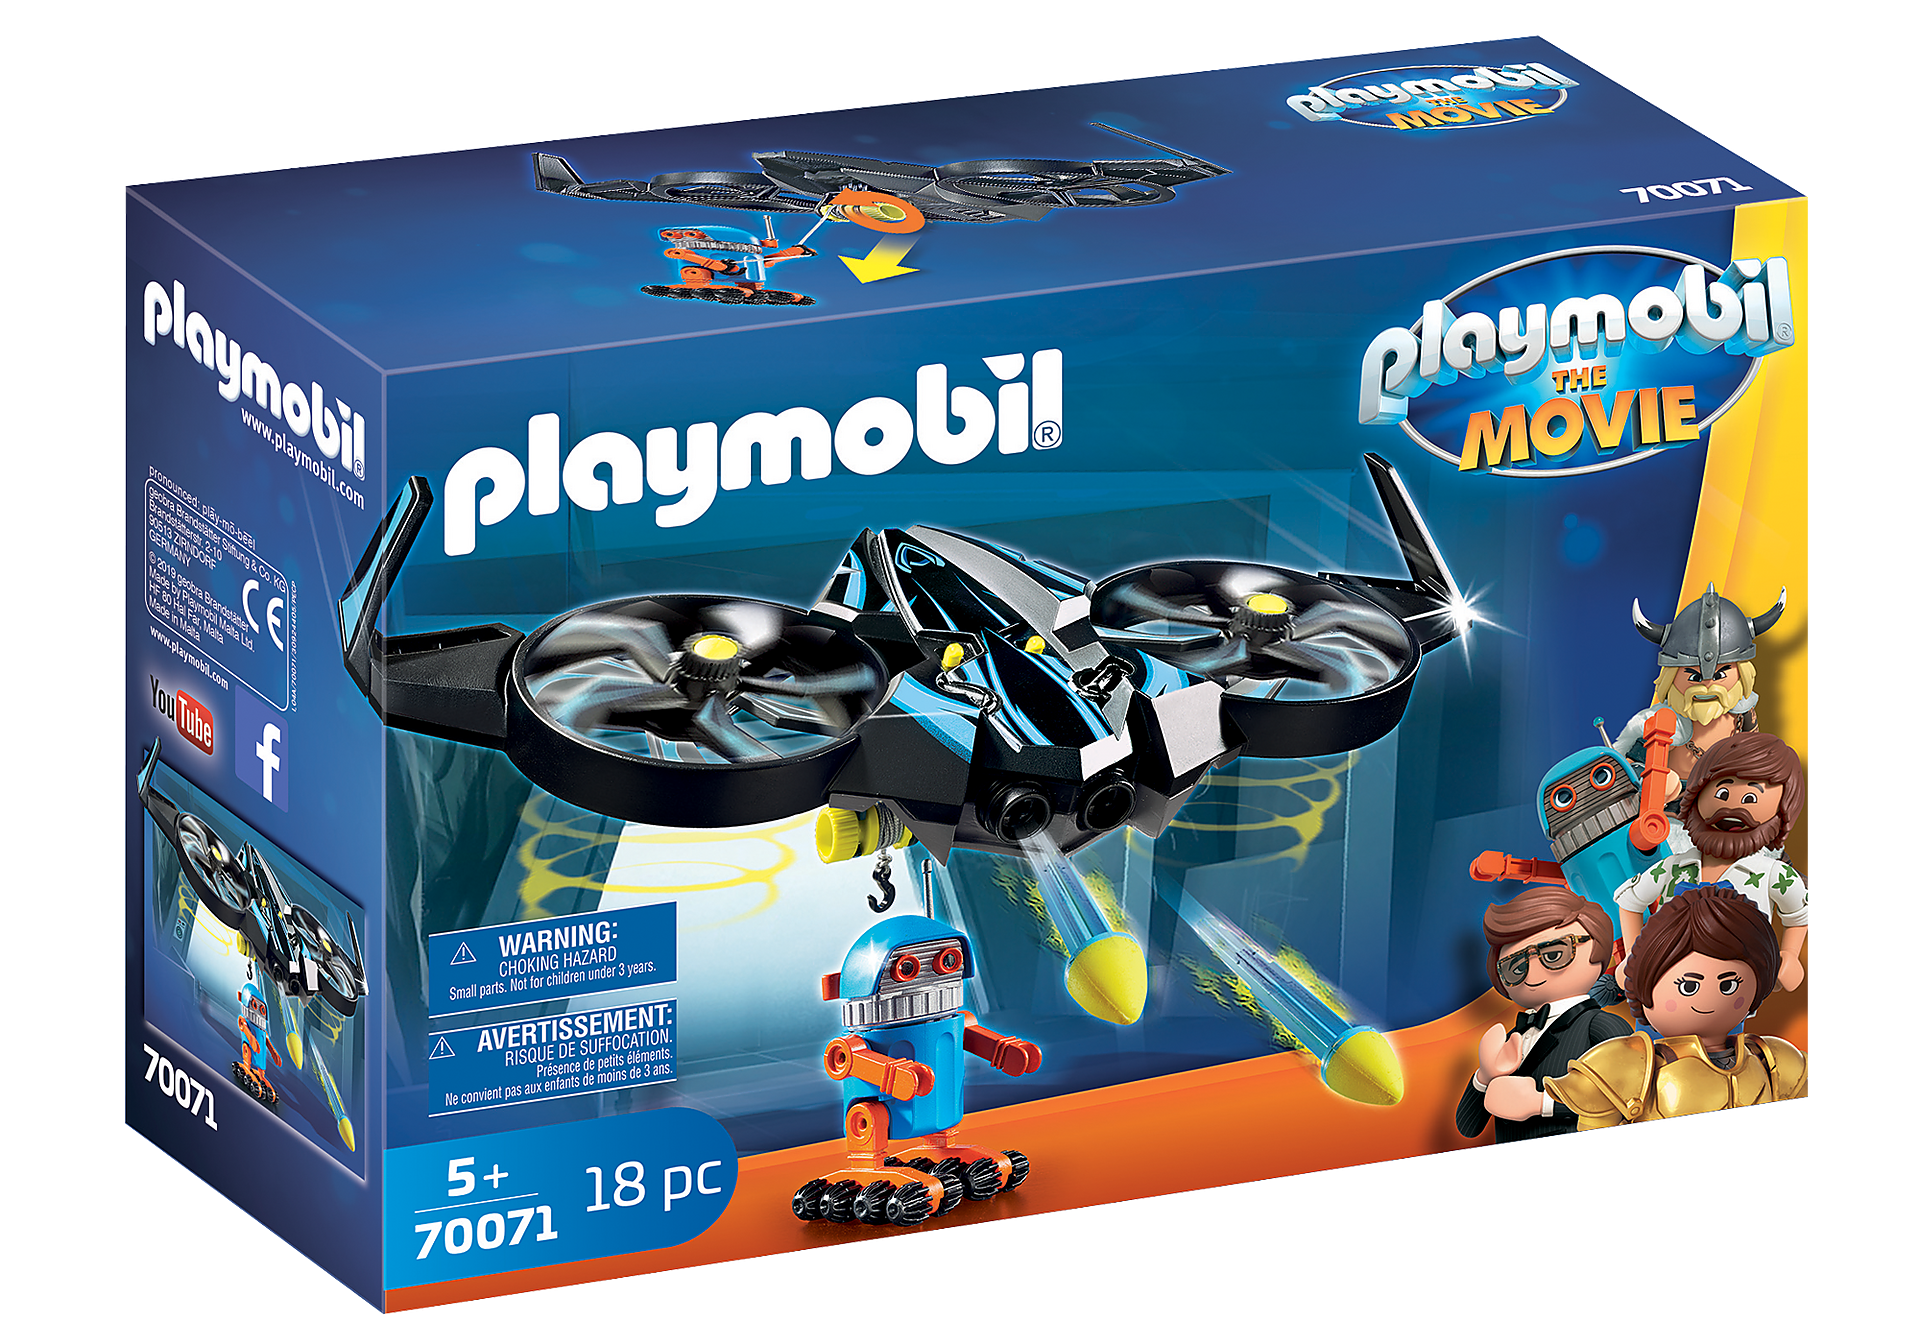 70071 PLAYMOBIL: THE MOVIE Robotitron con Dron zoom image2